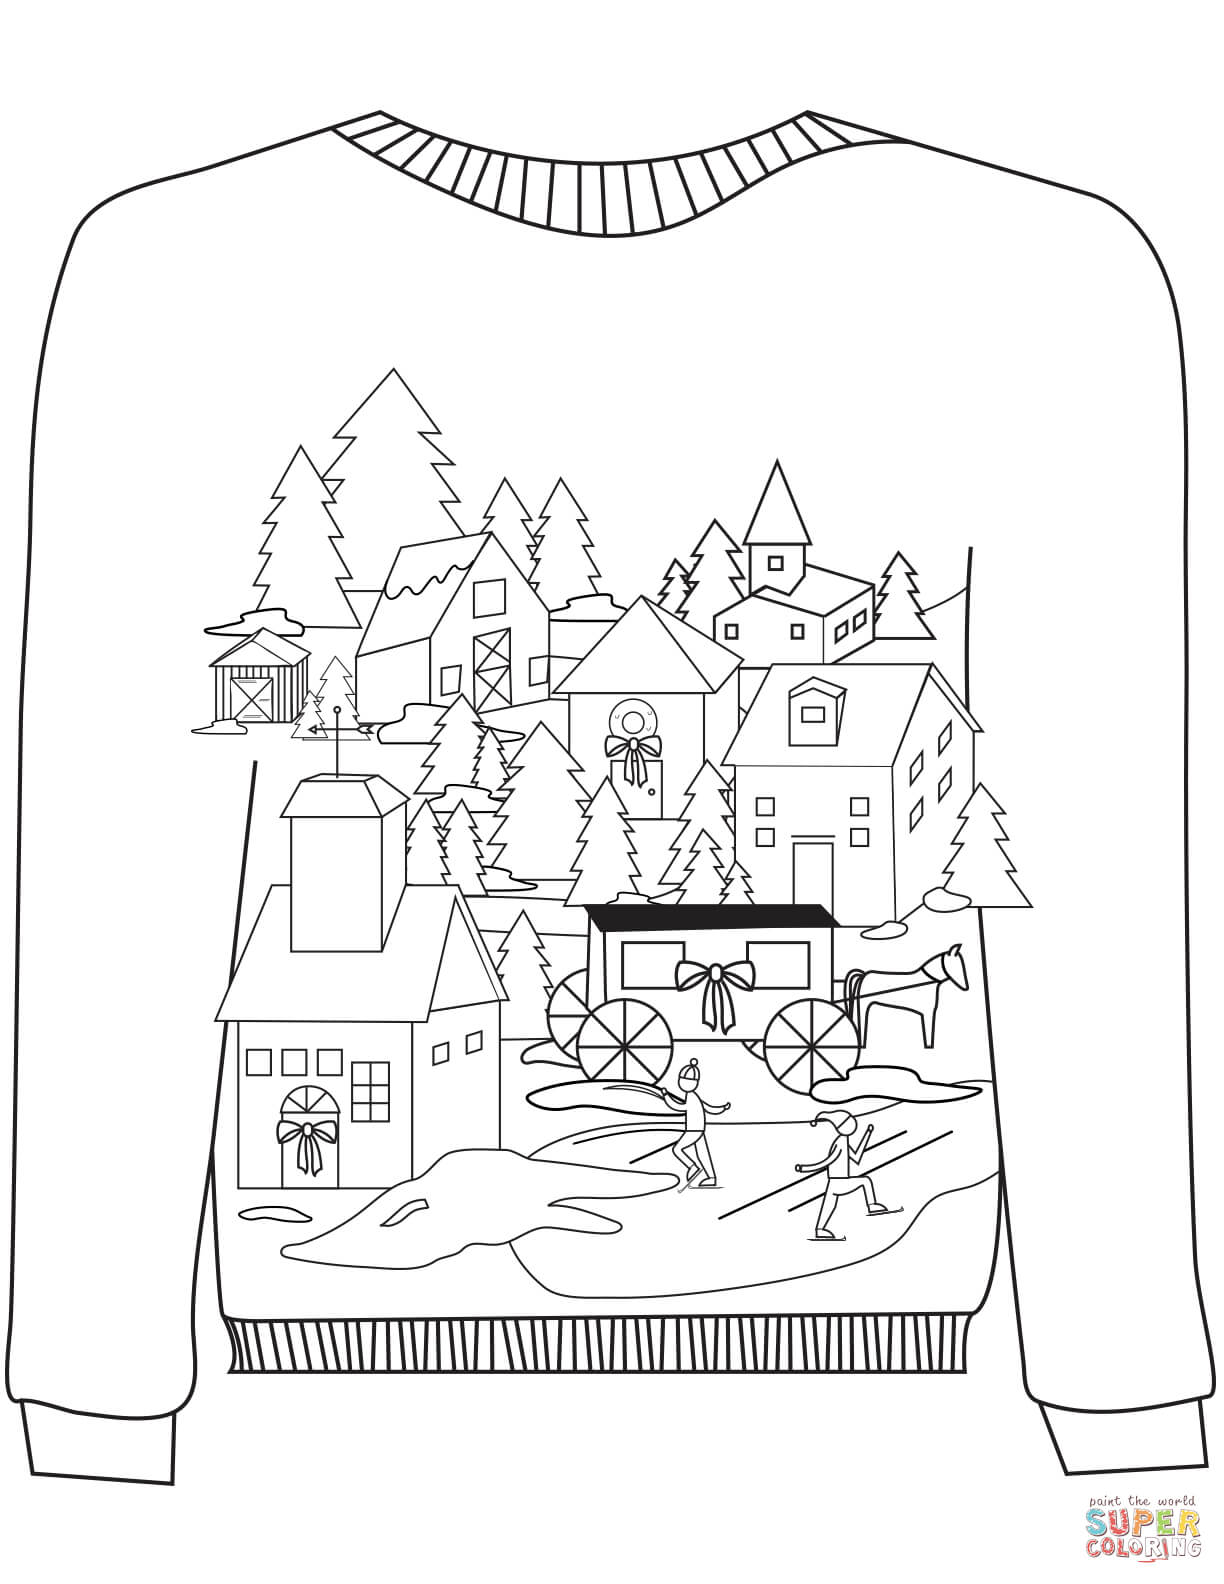 Christmas Village Coloring Book With Ugly Sweater A Motif Page Free